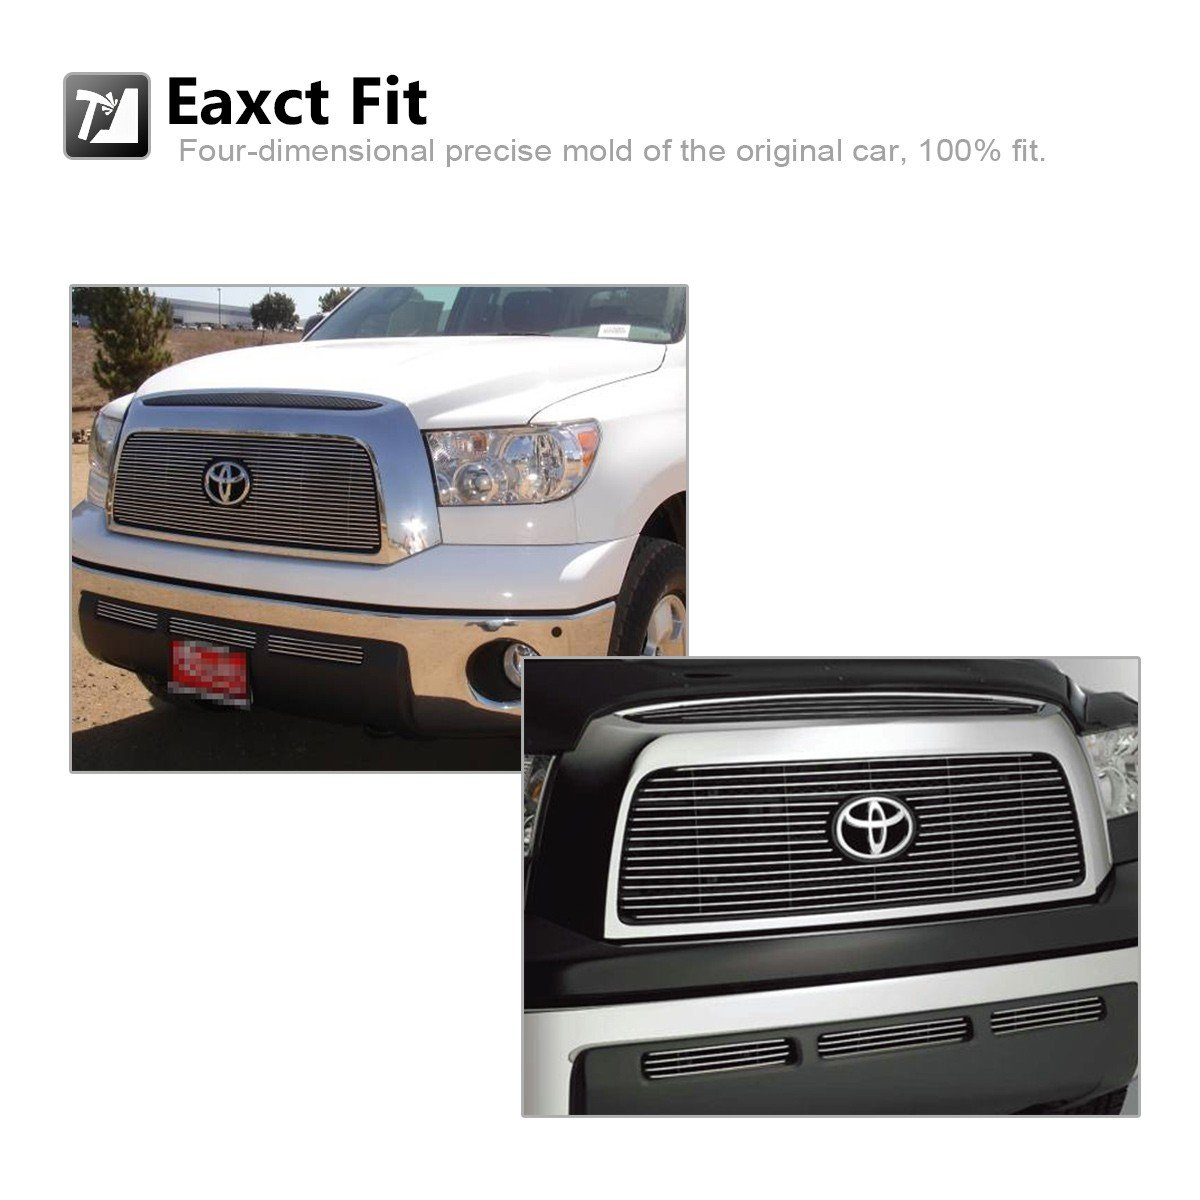 AUTEX T67841A Aluminum Polished Main Upper Grille Lower Bumper Billet Grille Compatible With 2007 2008 2009 Toyota Tundra Grill Insert